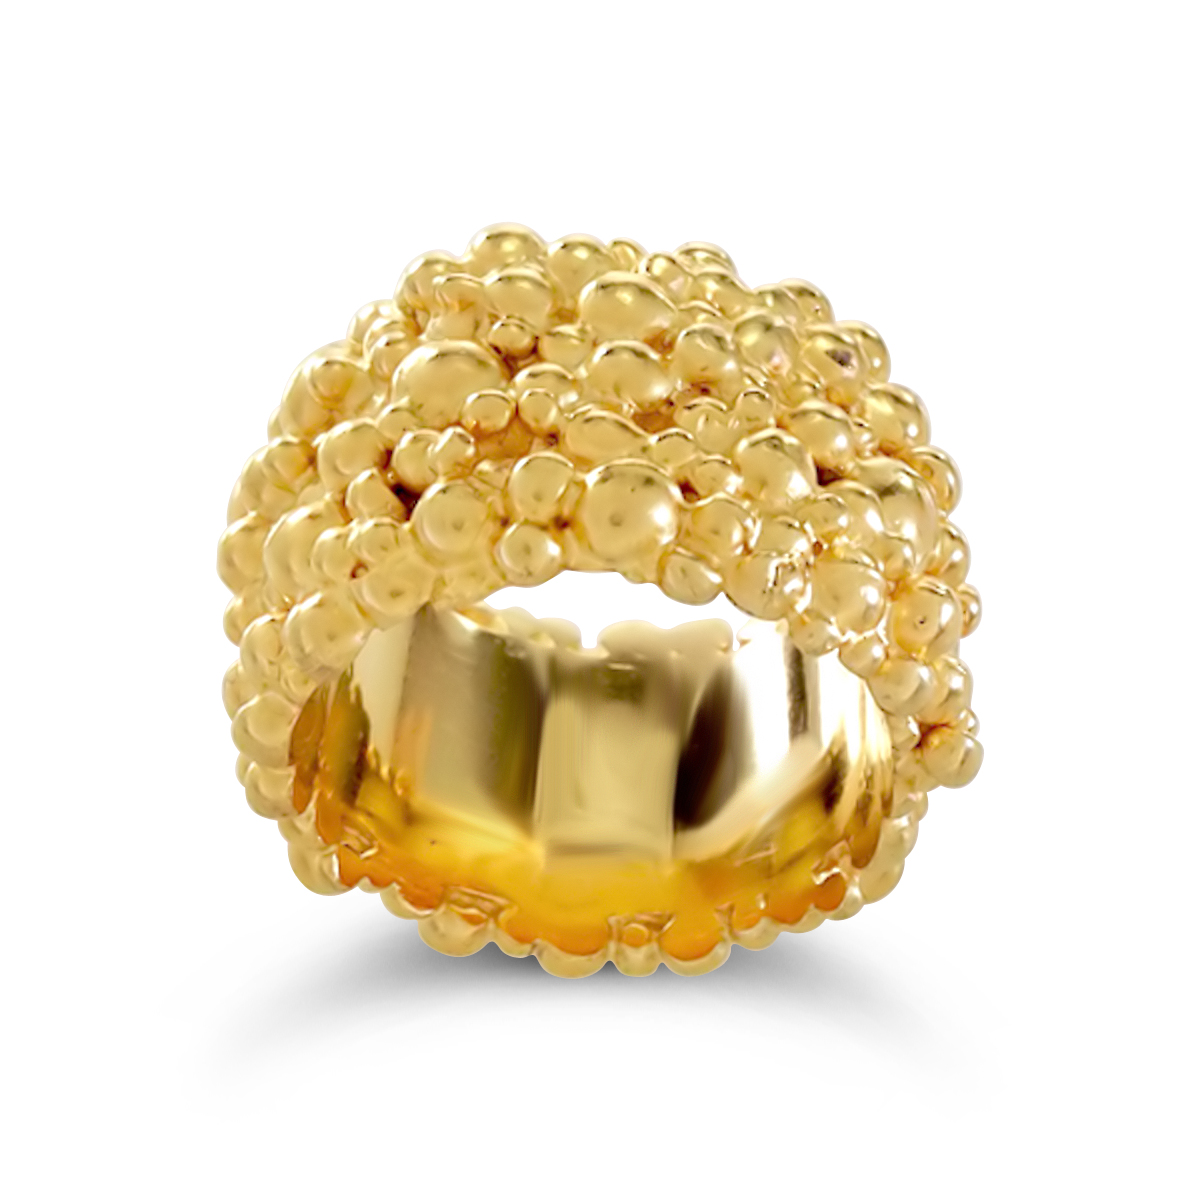 Molecule eternity ring gold plated silver 15mm wide